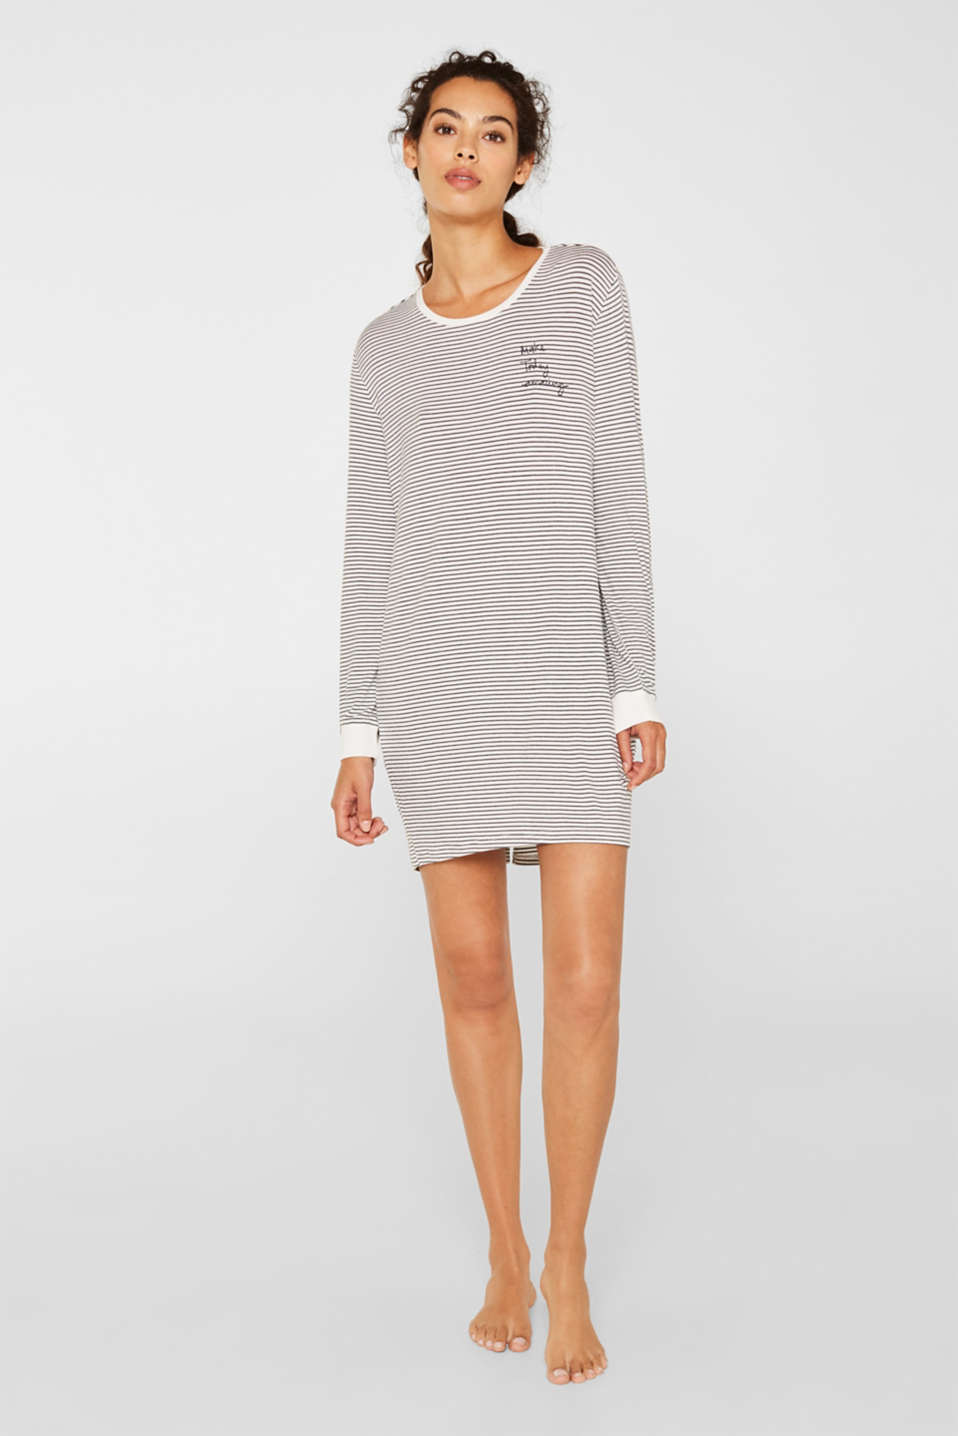 Stretch jersey nightshirt with stripes, MEDIUM GREY, detail image number 0